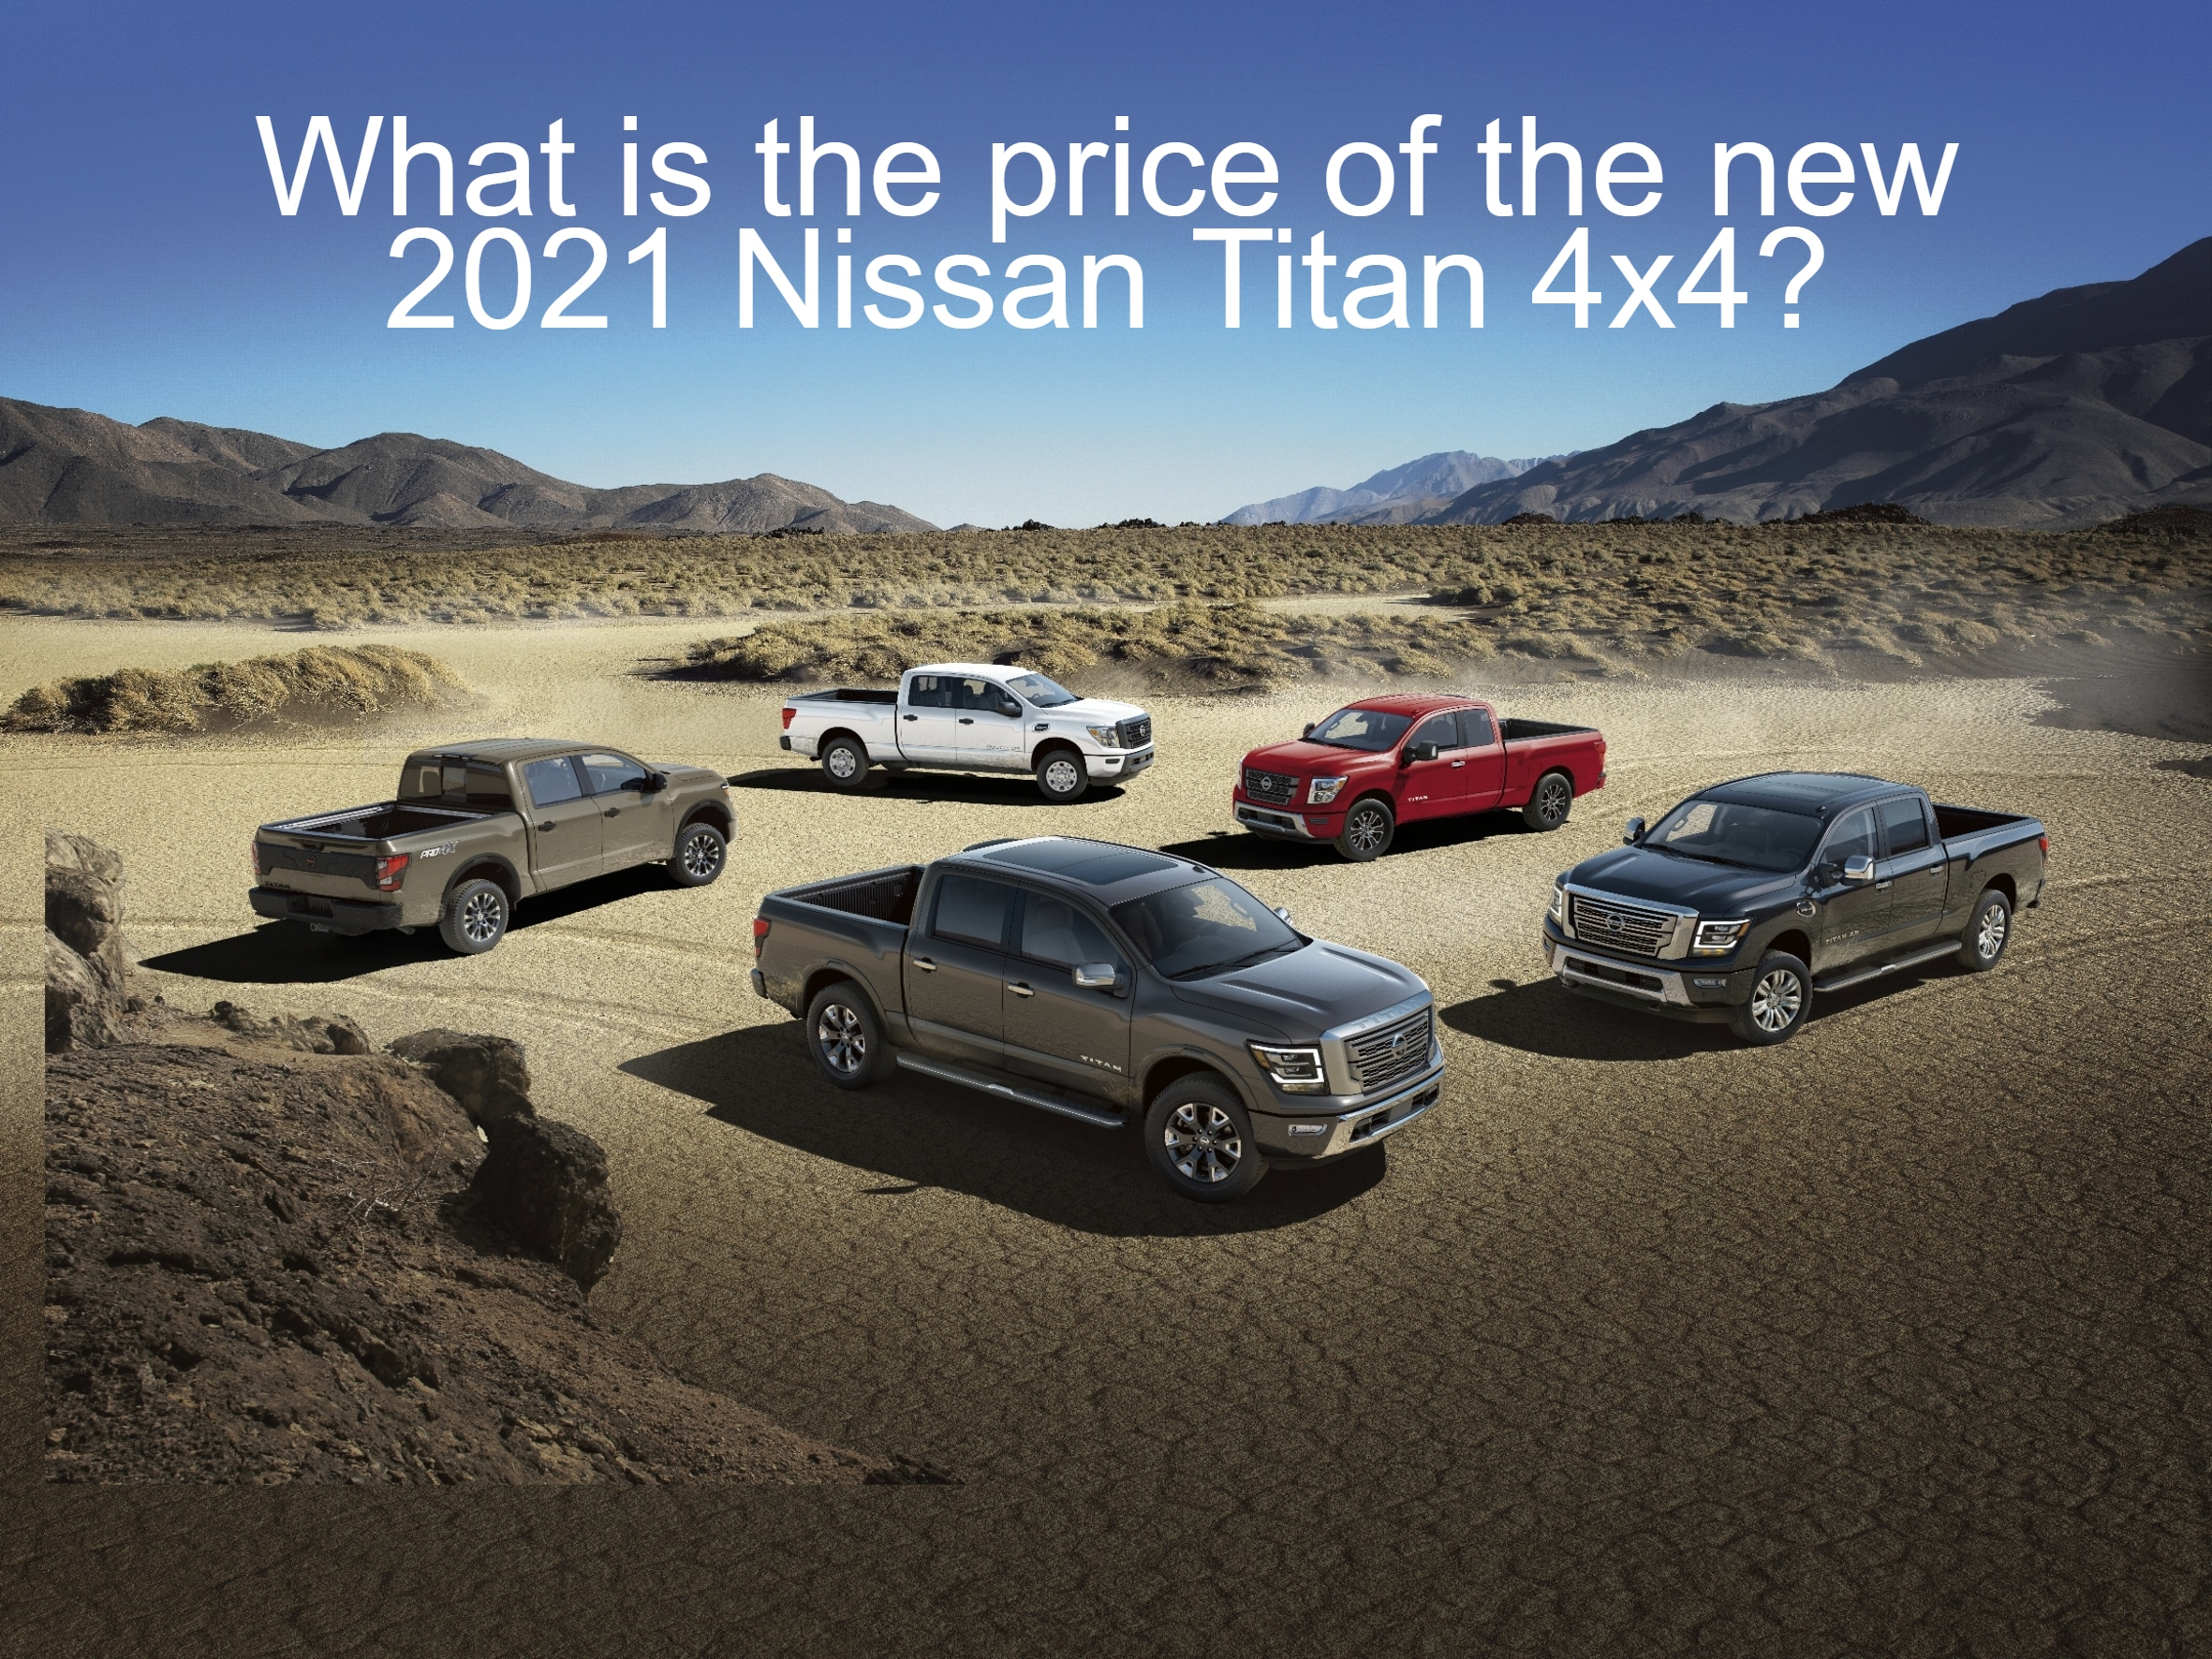 Five Nissan Titan trucks parked in Desert facing different directions